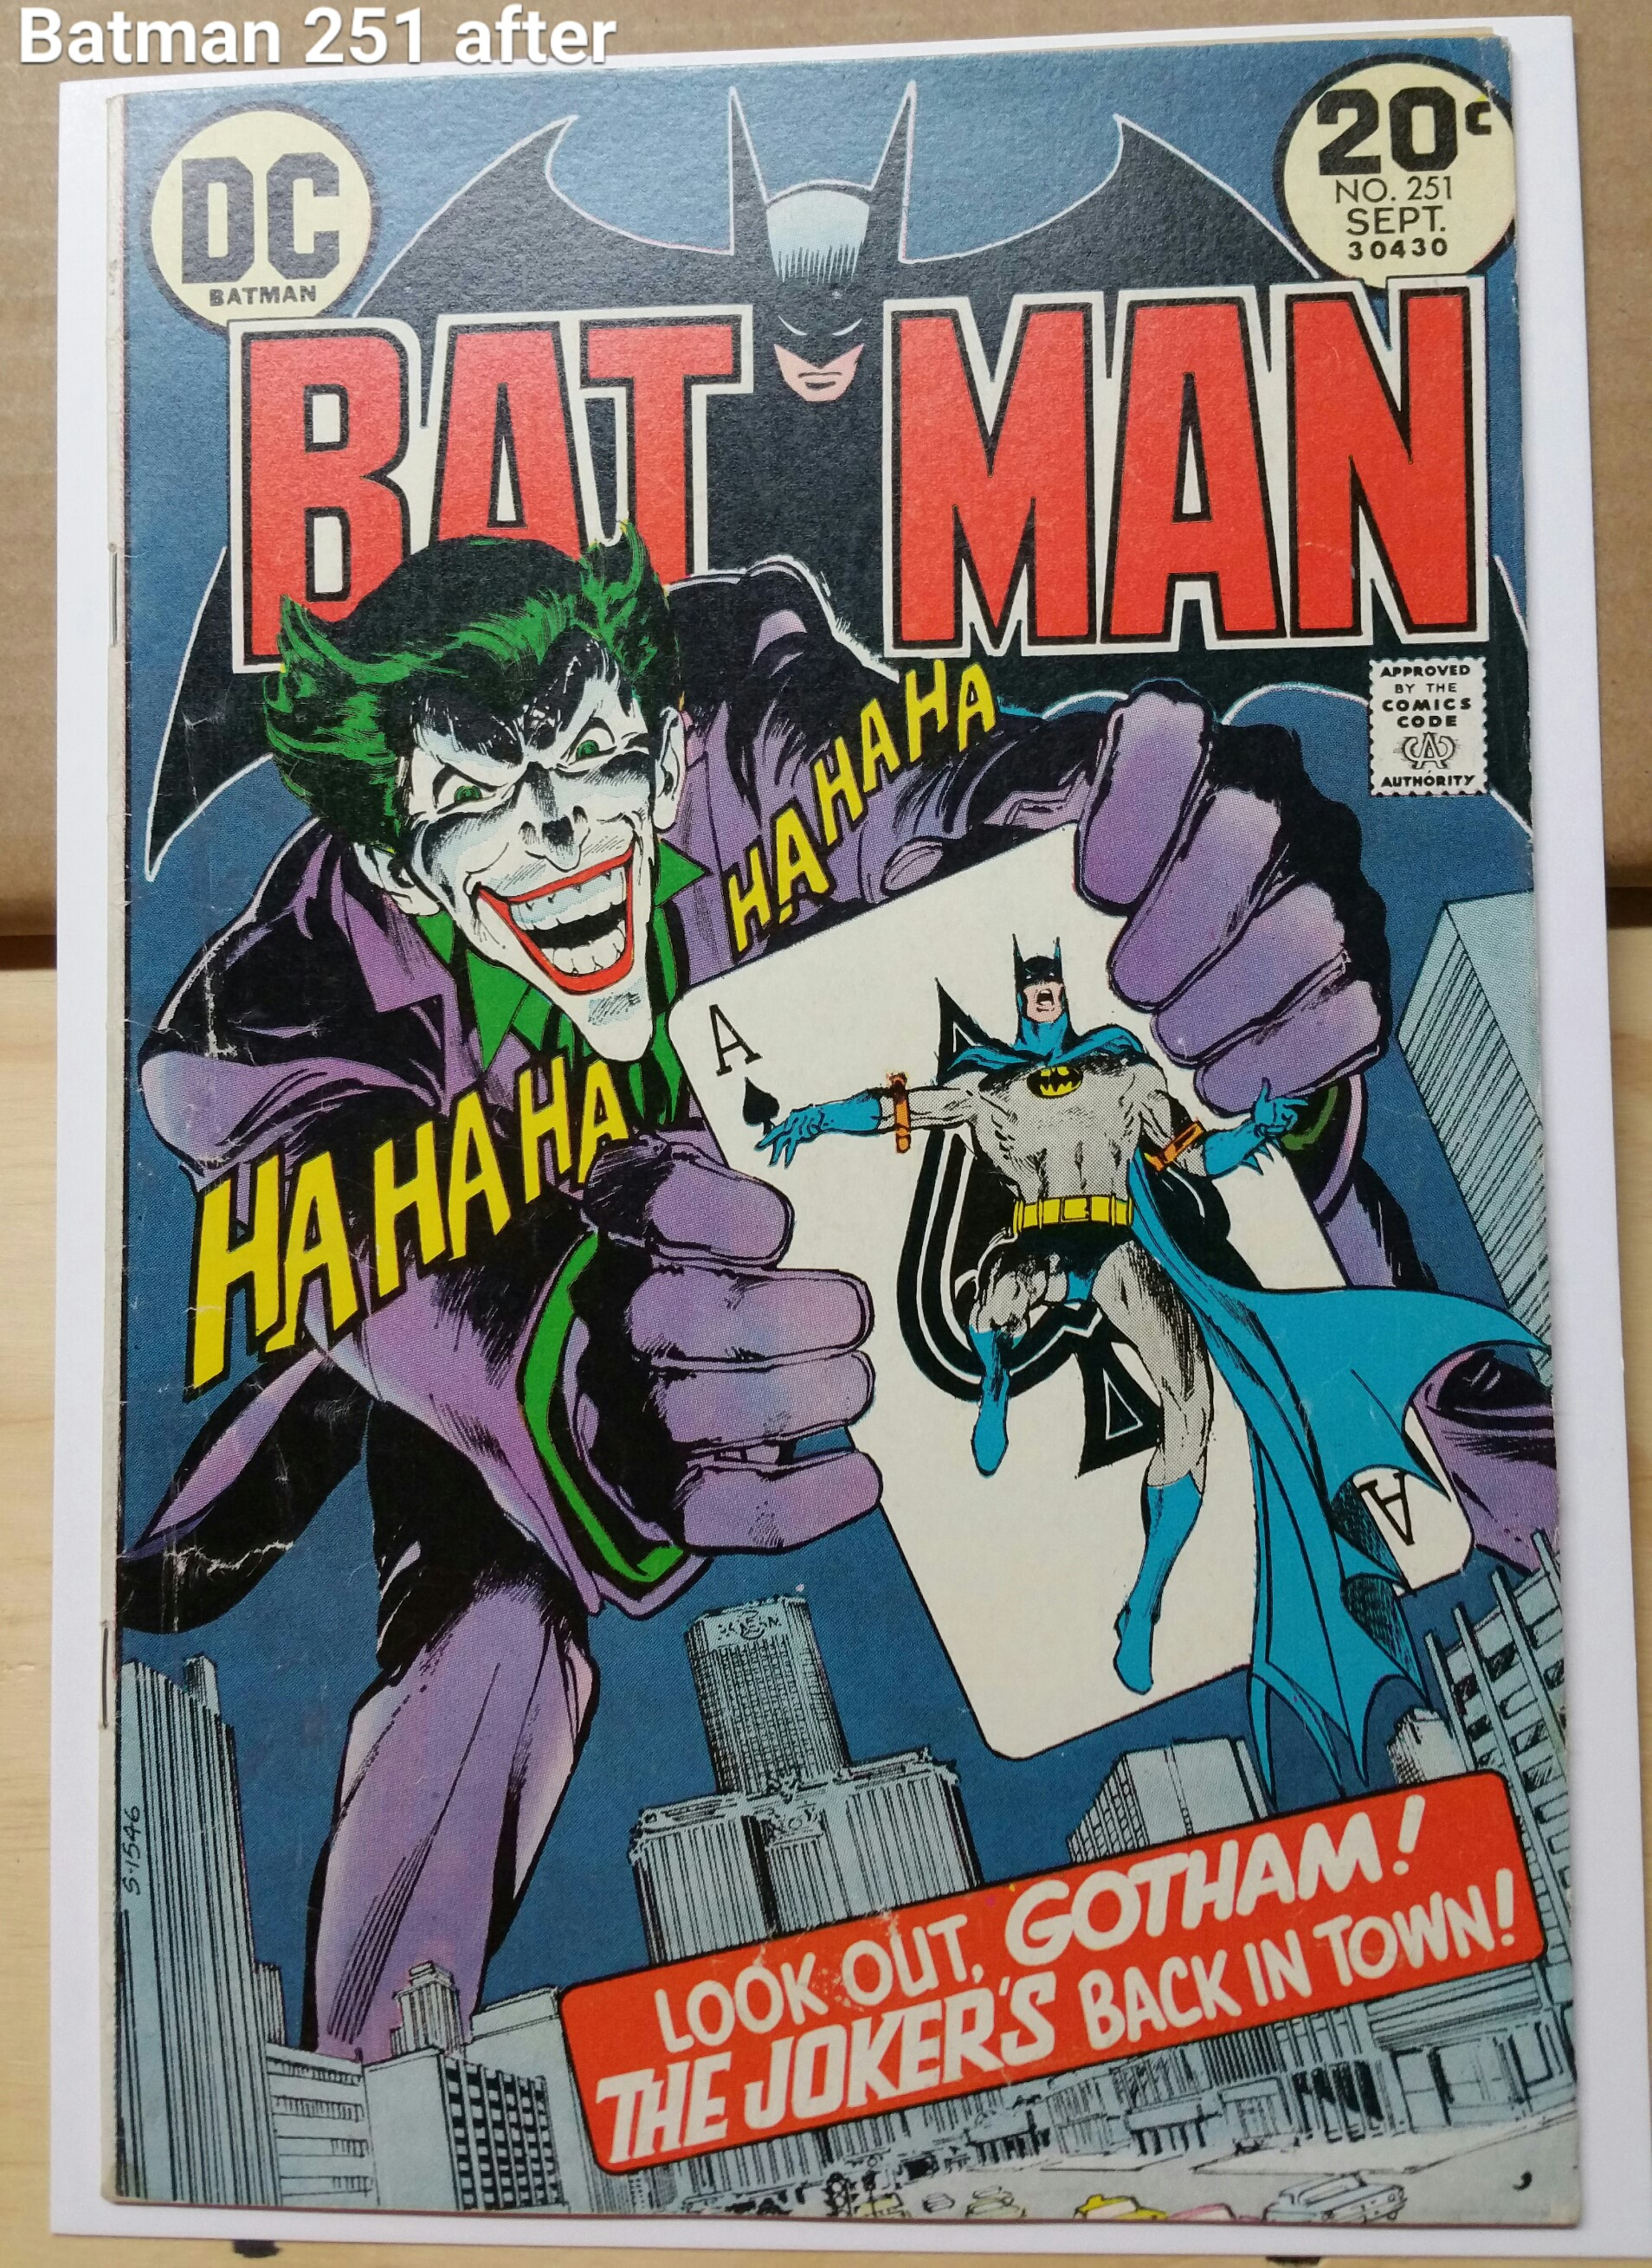 Batman 251 front after